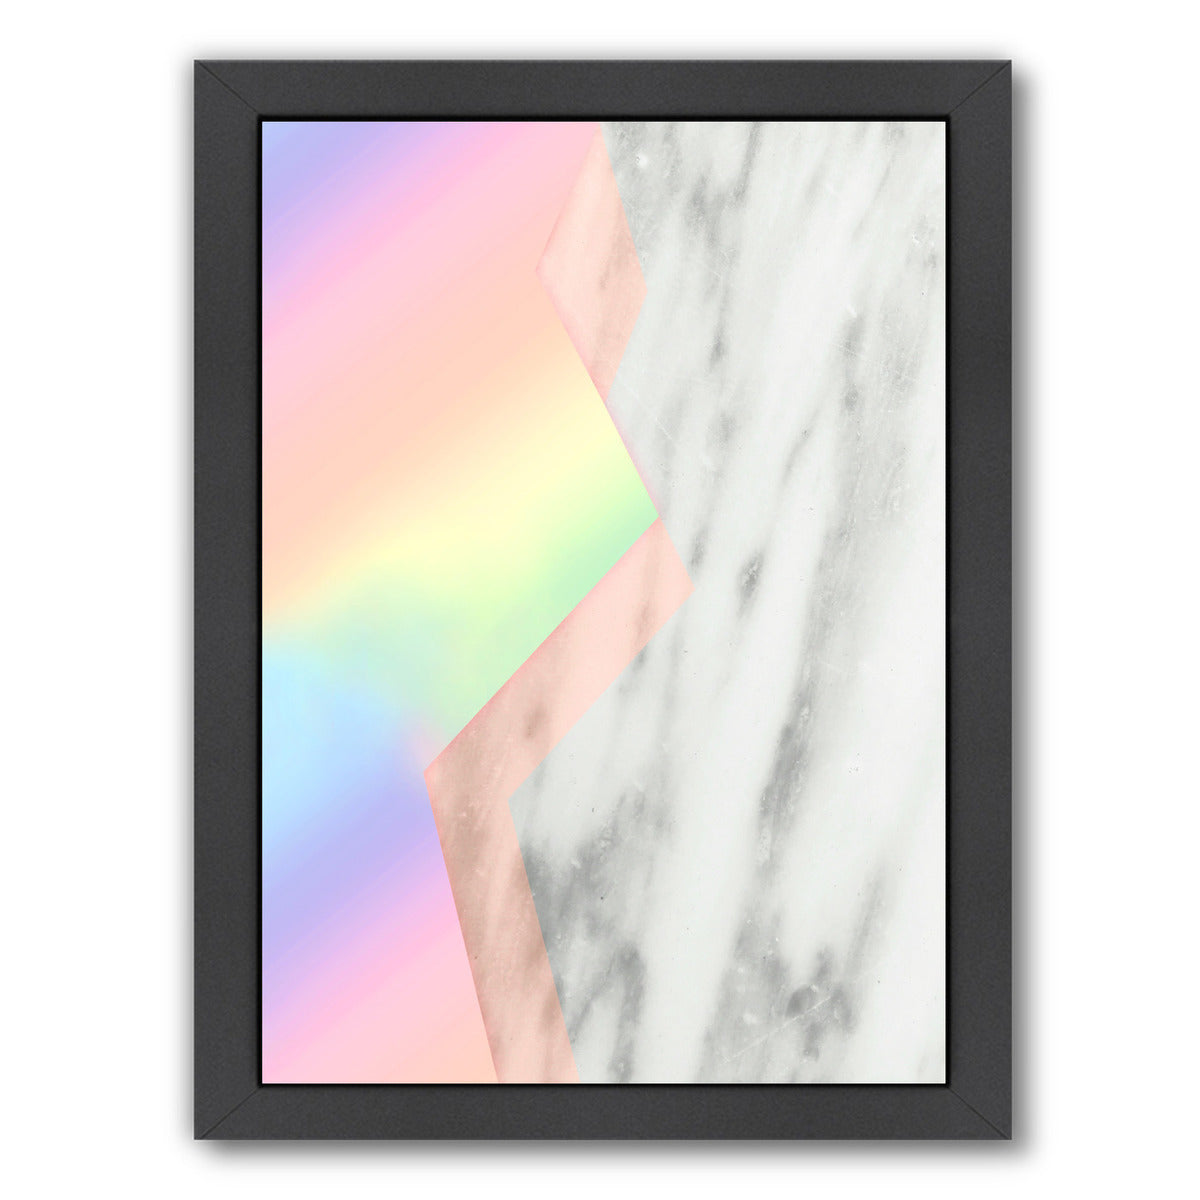 Unicorn Marble by Emanuela Carratoni Black Framed Print - Americanflat